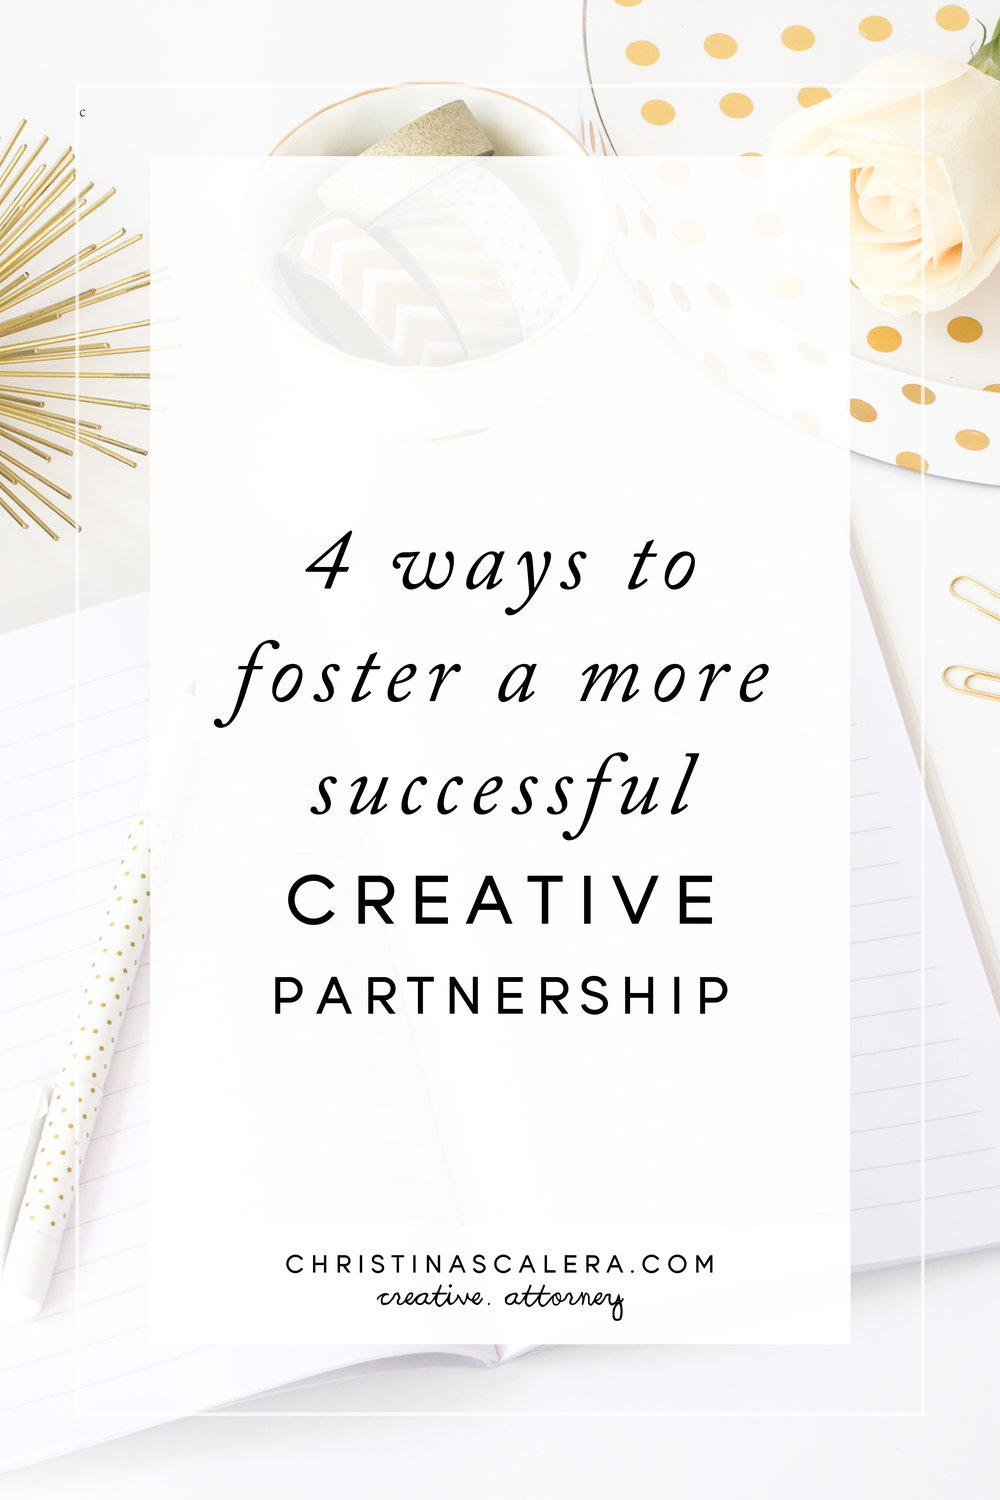 4 Ways to foster a more successful creative partnership.